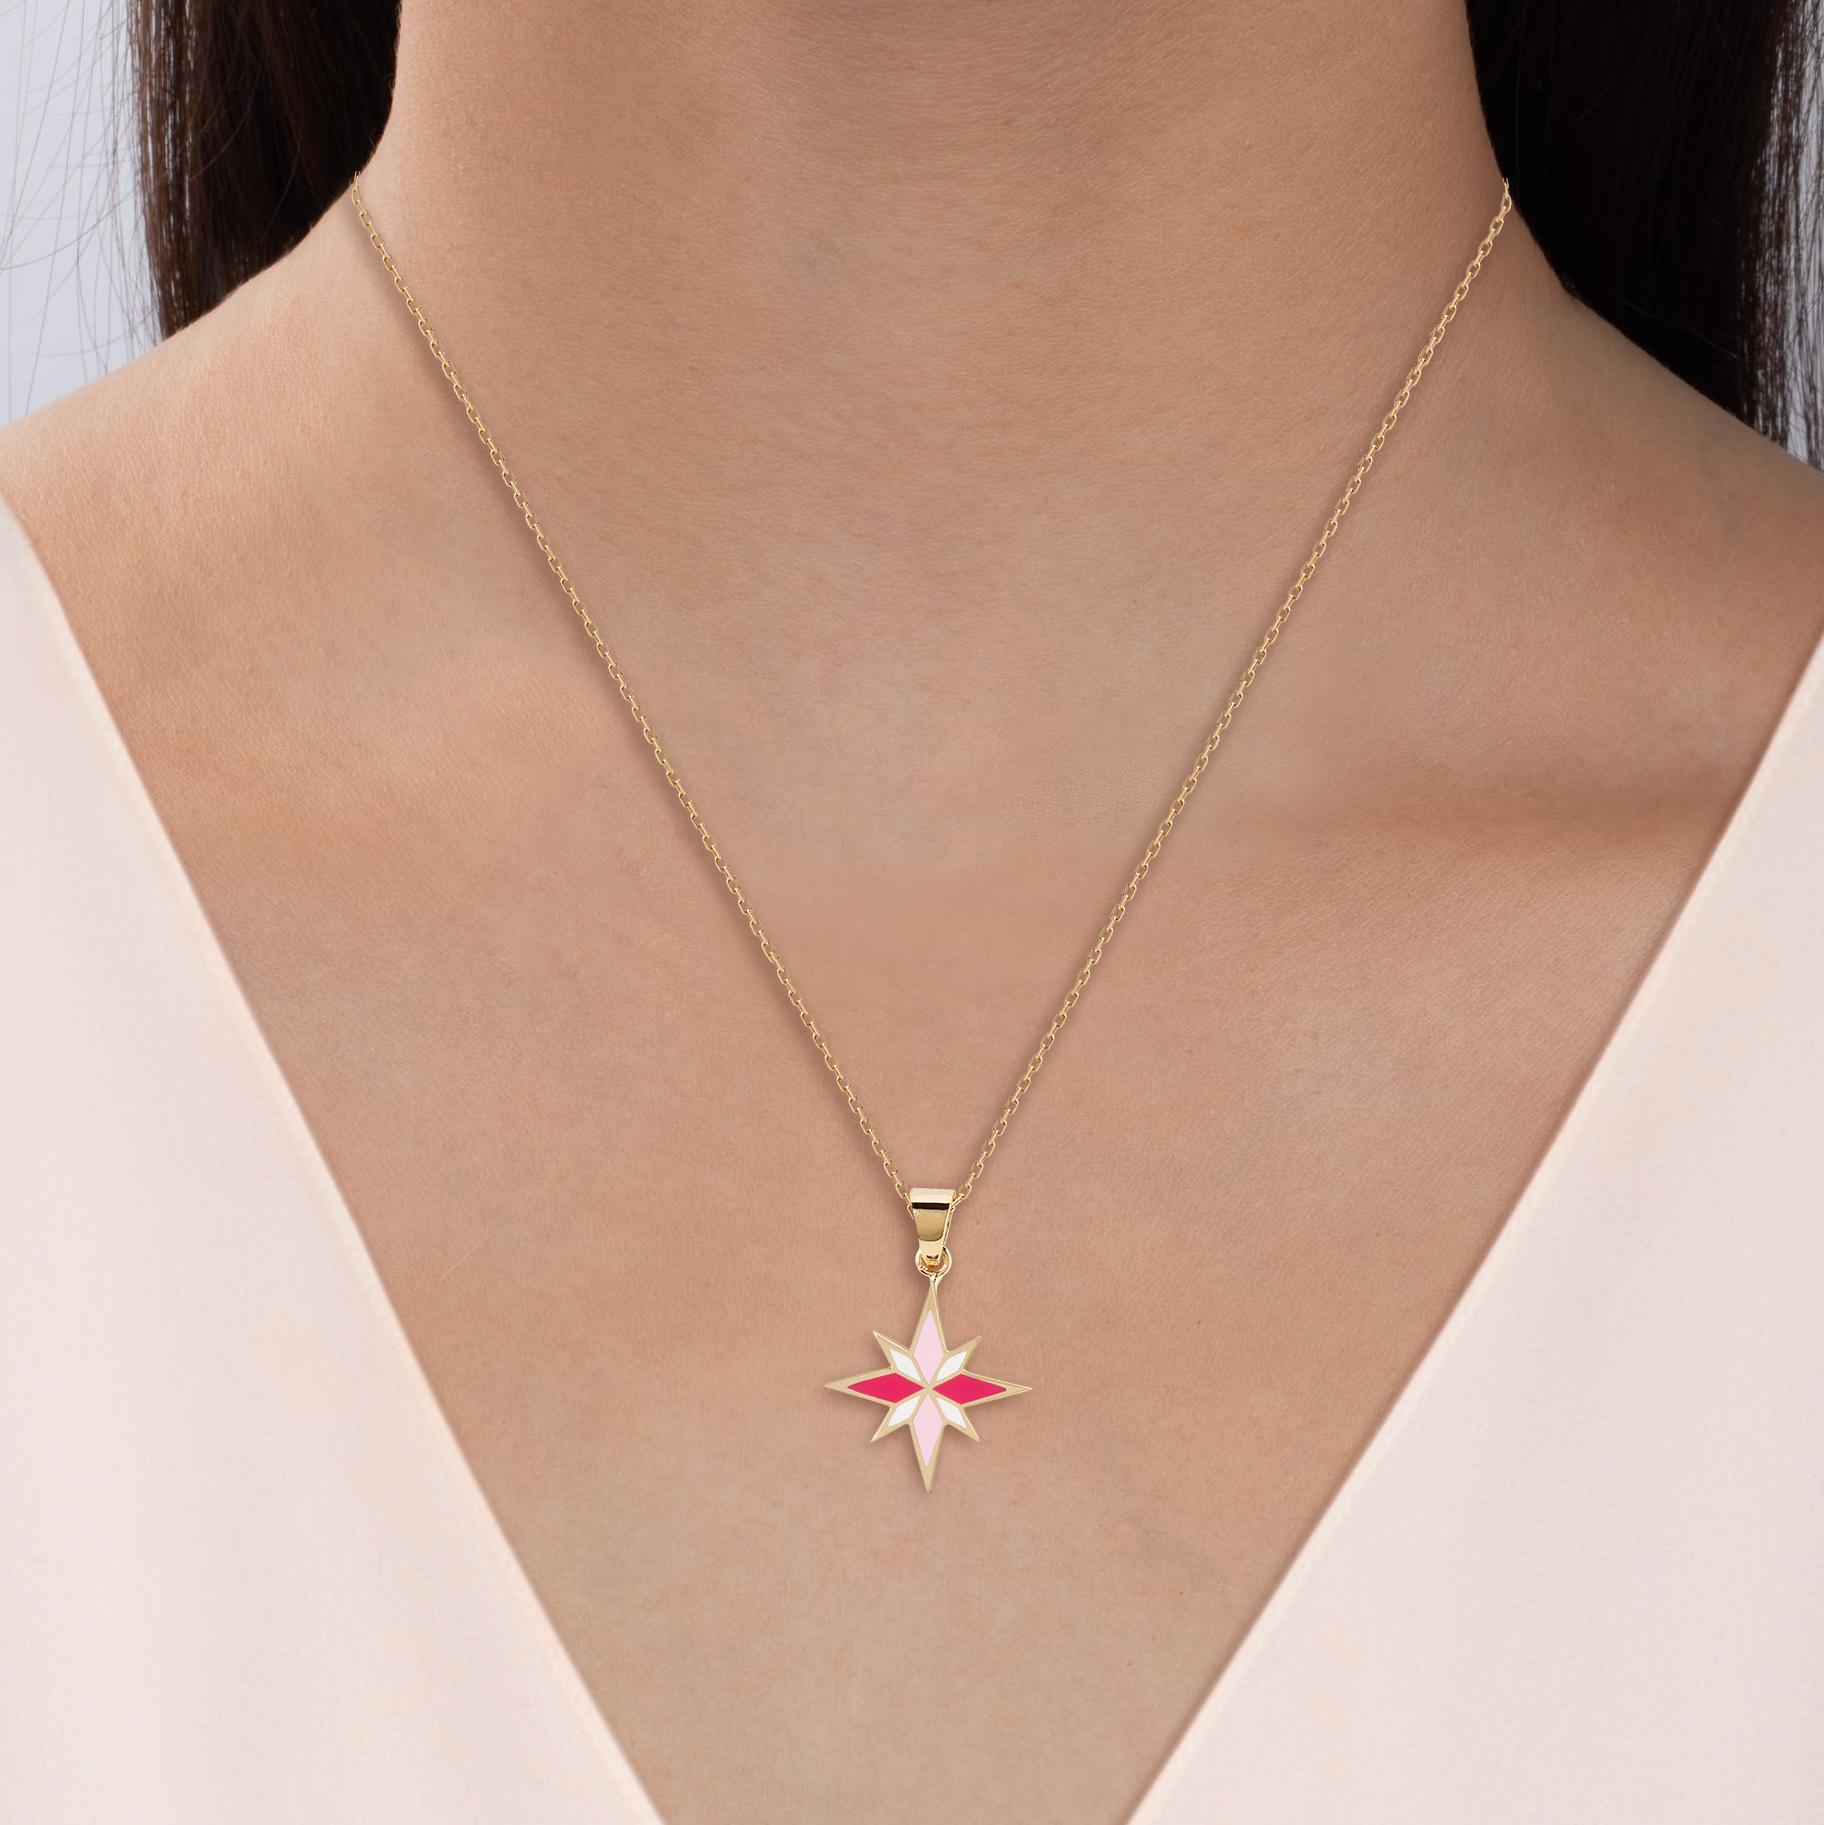 Sirius Necklace - Pink - 18K Yellow Gold by Aveen on curated-crowd.com